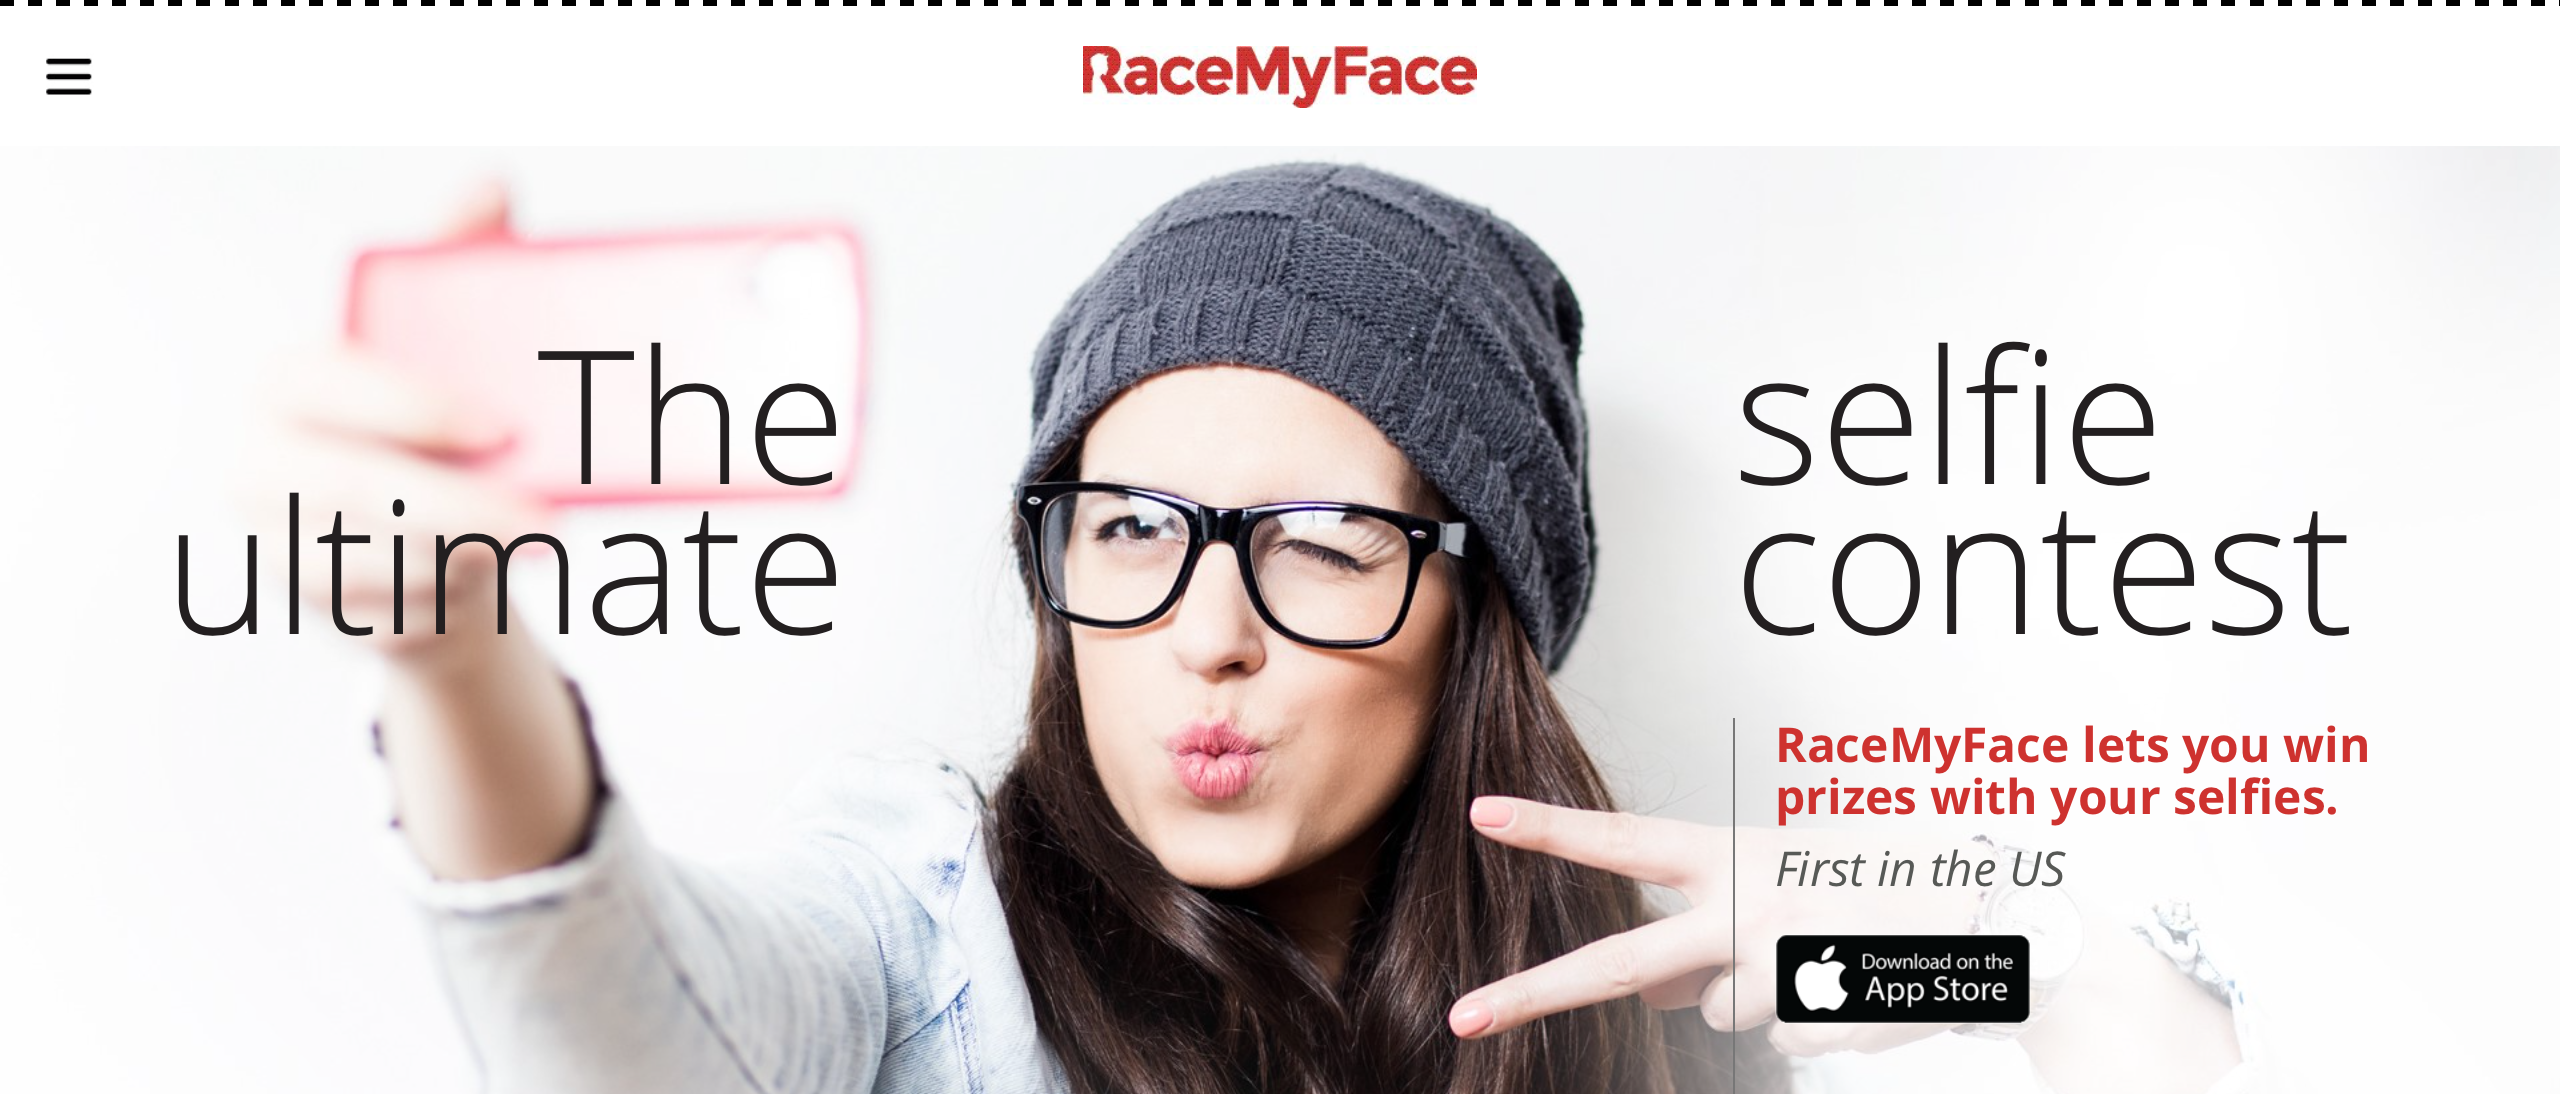 Take your selfies up a notch with RaceMyFace competitions